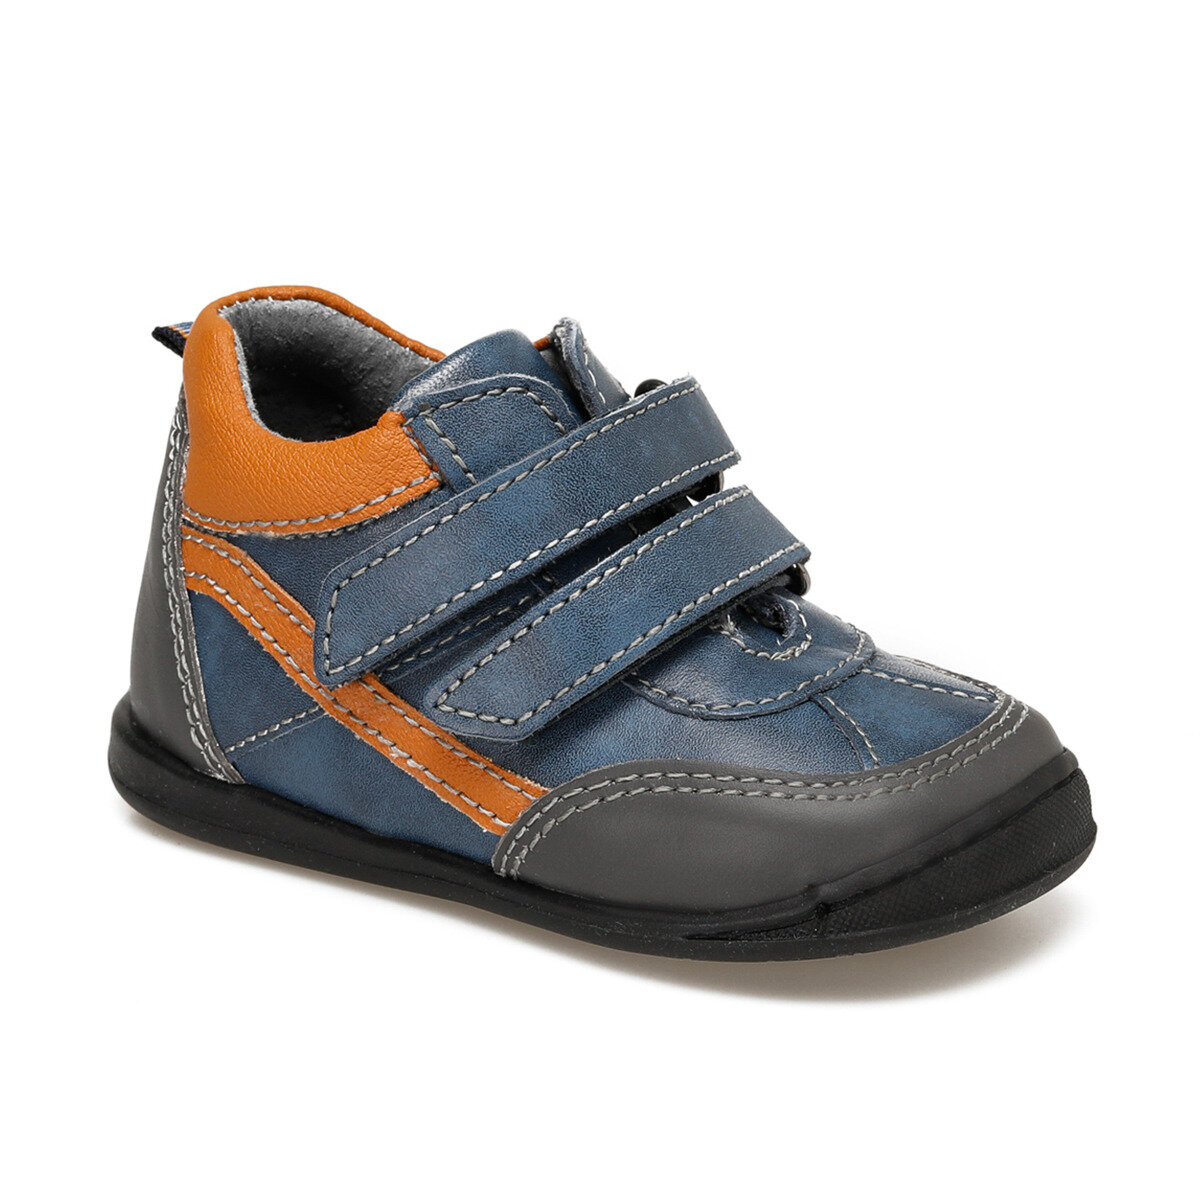 FLO MELANIA FIRST STEP-M Blue Male Child Boots Kifidis